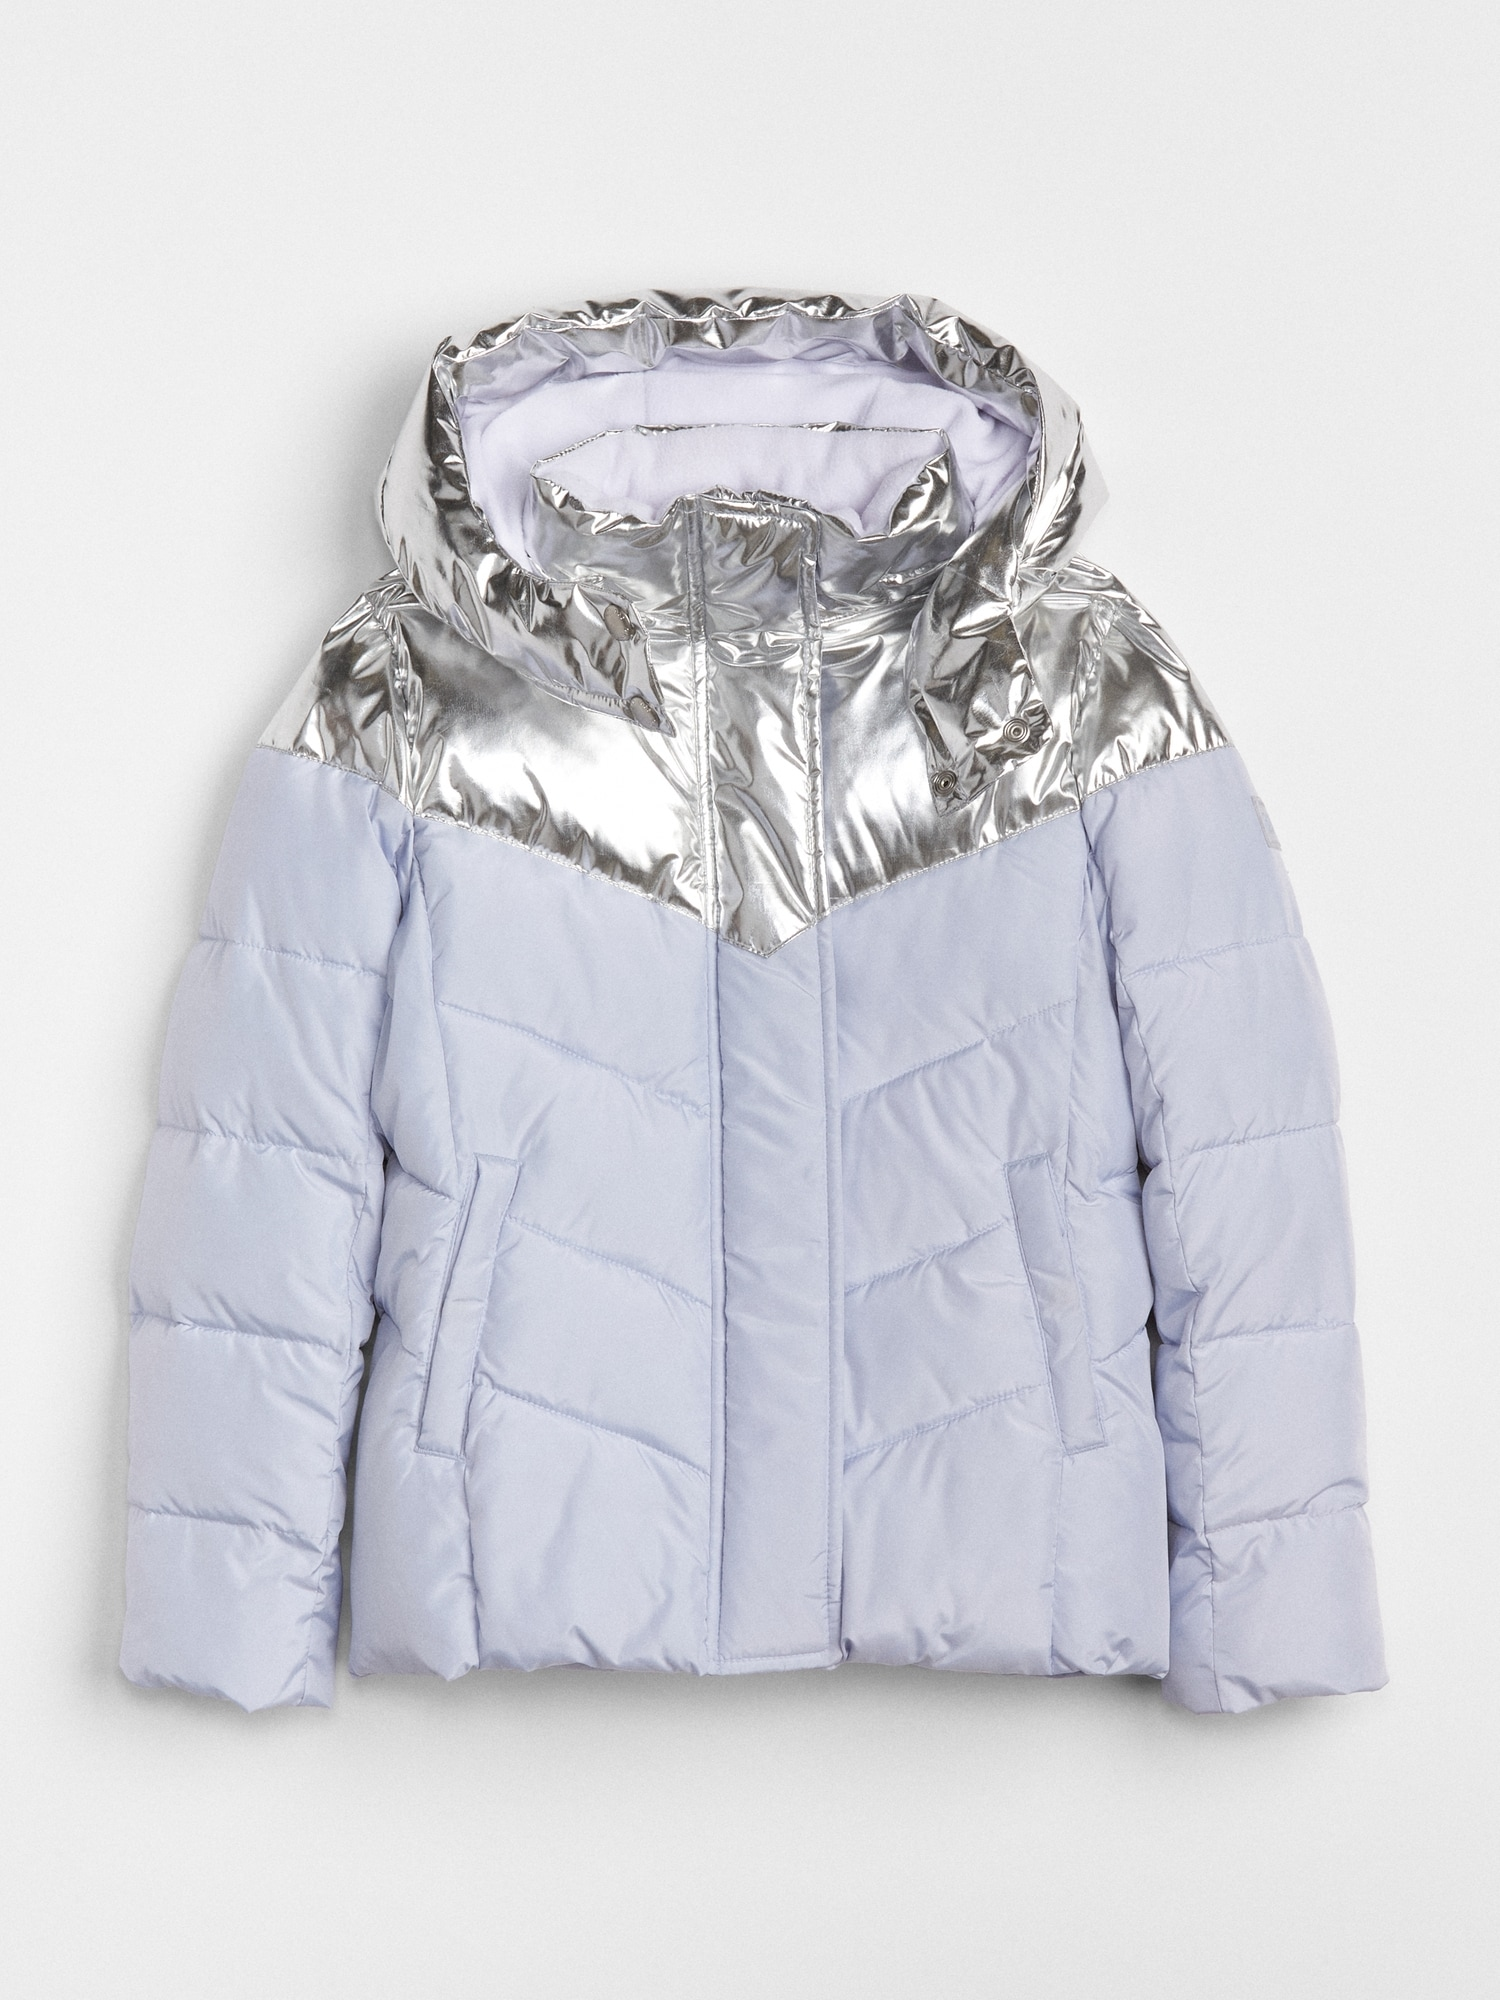 Coldcontrol Max Colorblock Puffer Jacket Gap